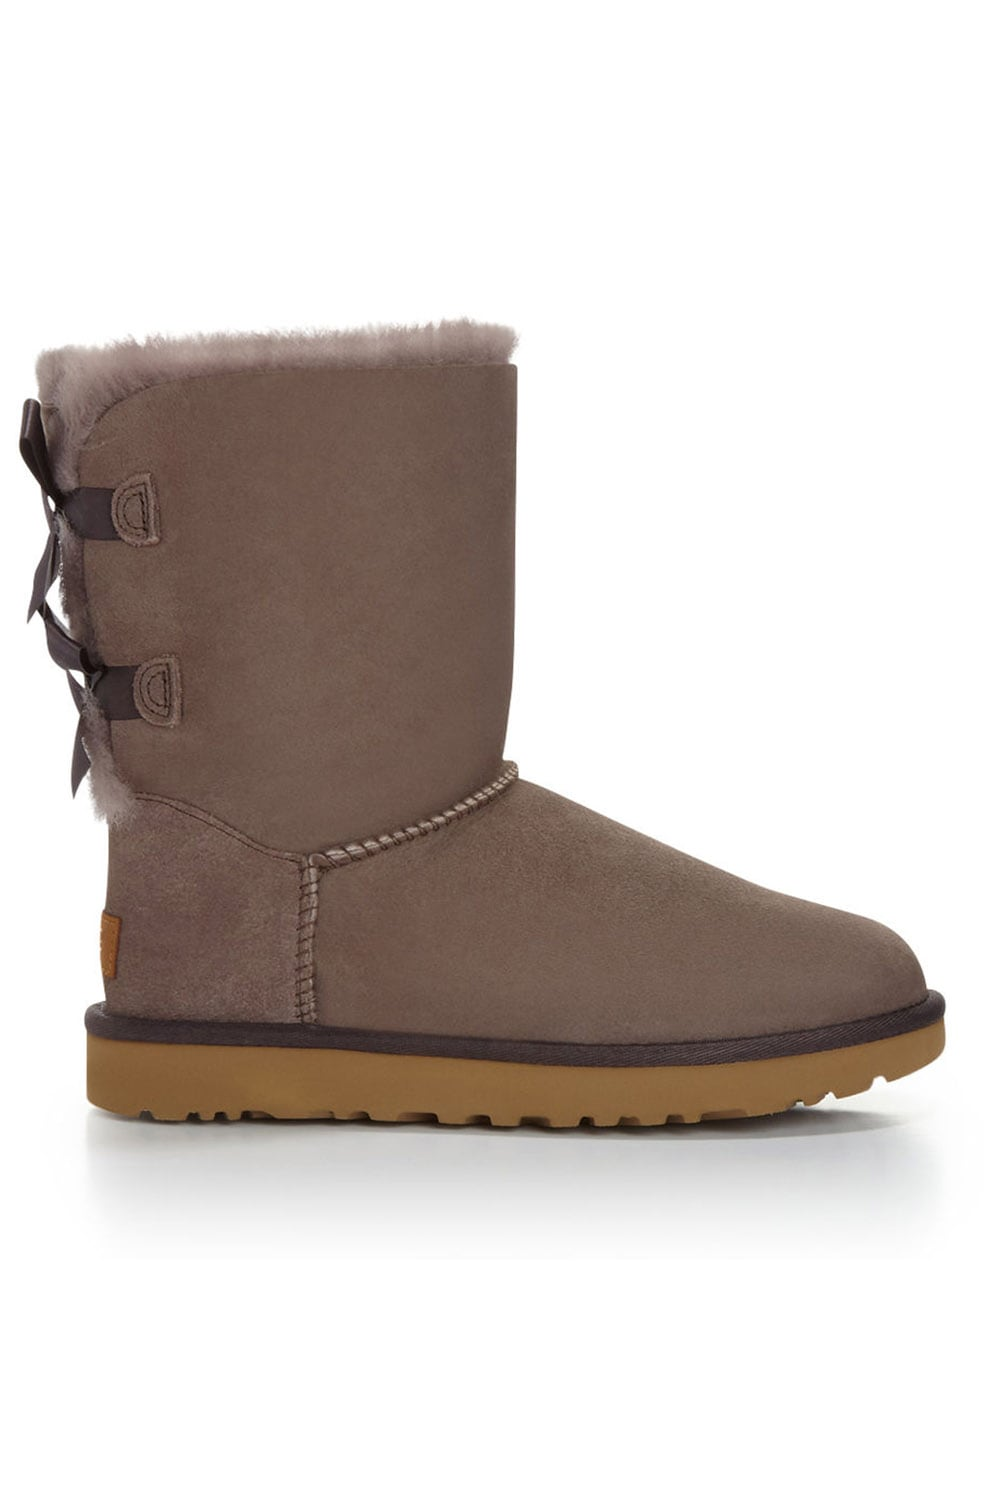 cheap ugg boots store reviews